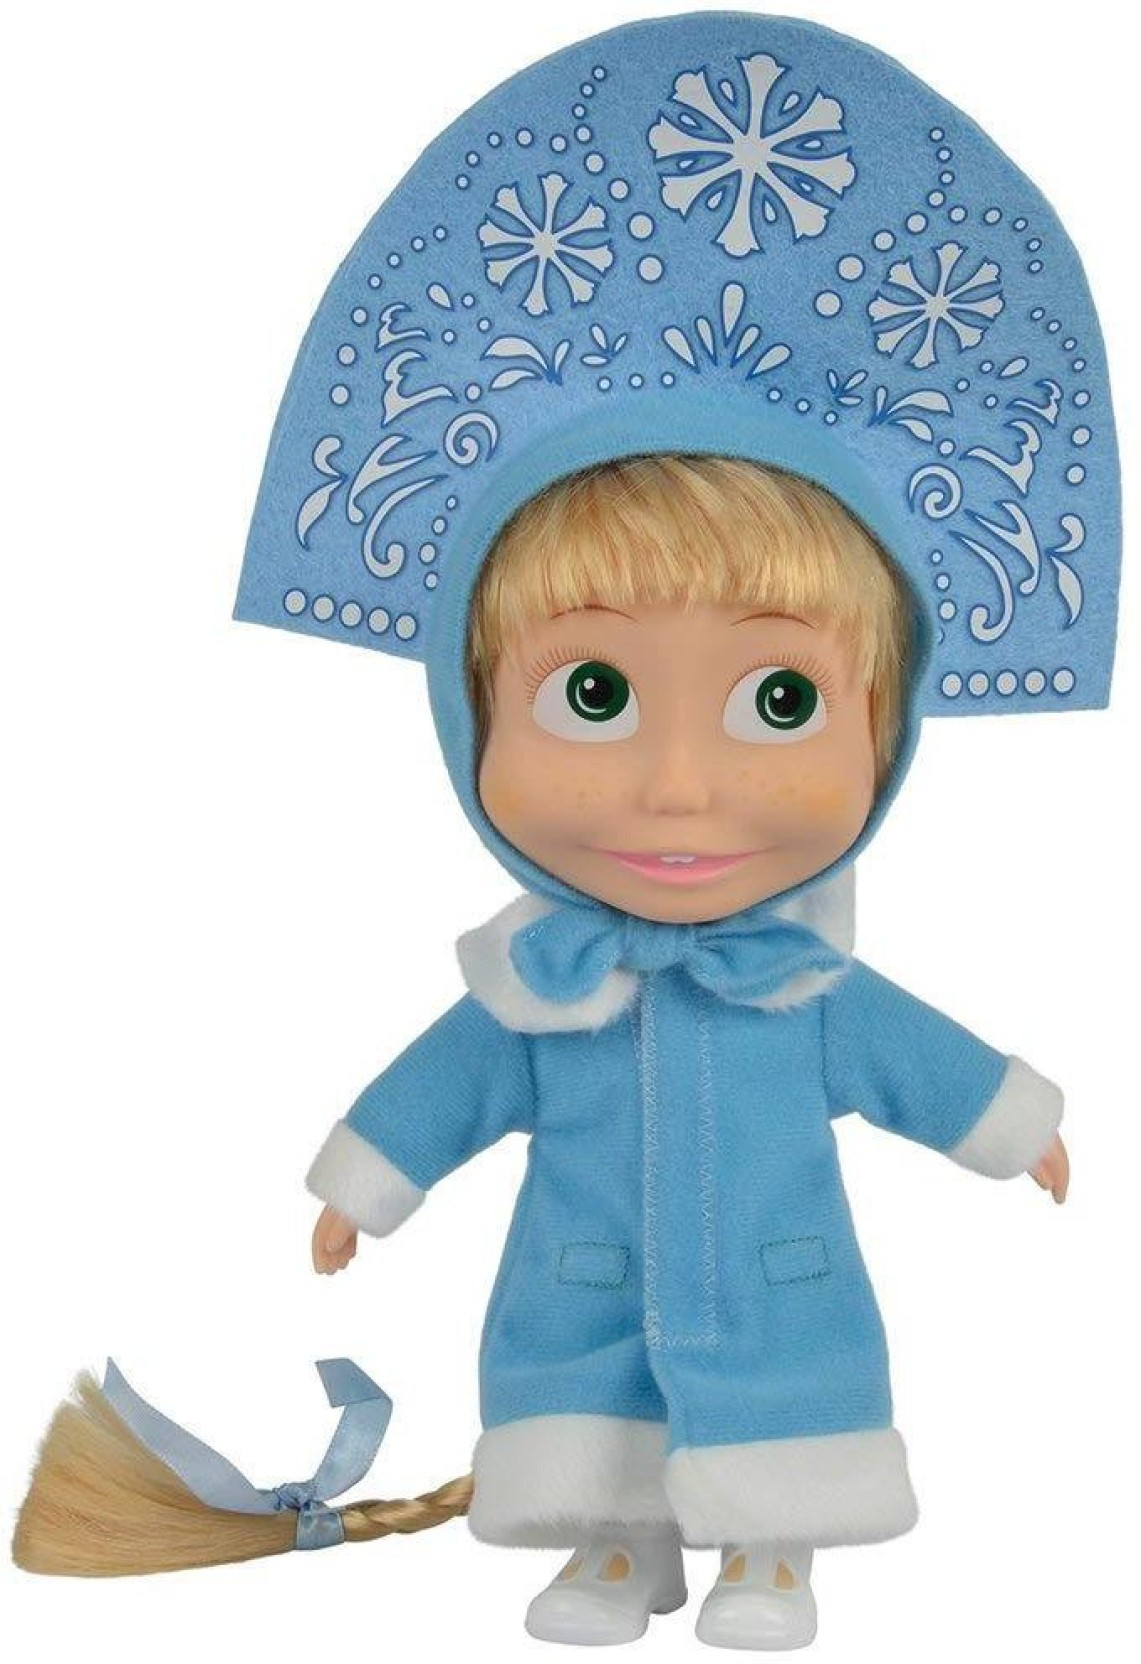 23cm Soft Bodied Masha Doll Nylon//A Masha and the Bear 109306372 Doll-23cm